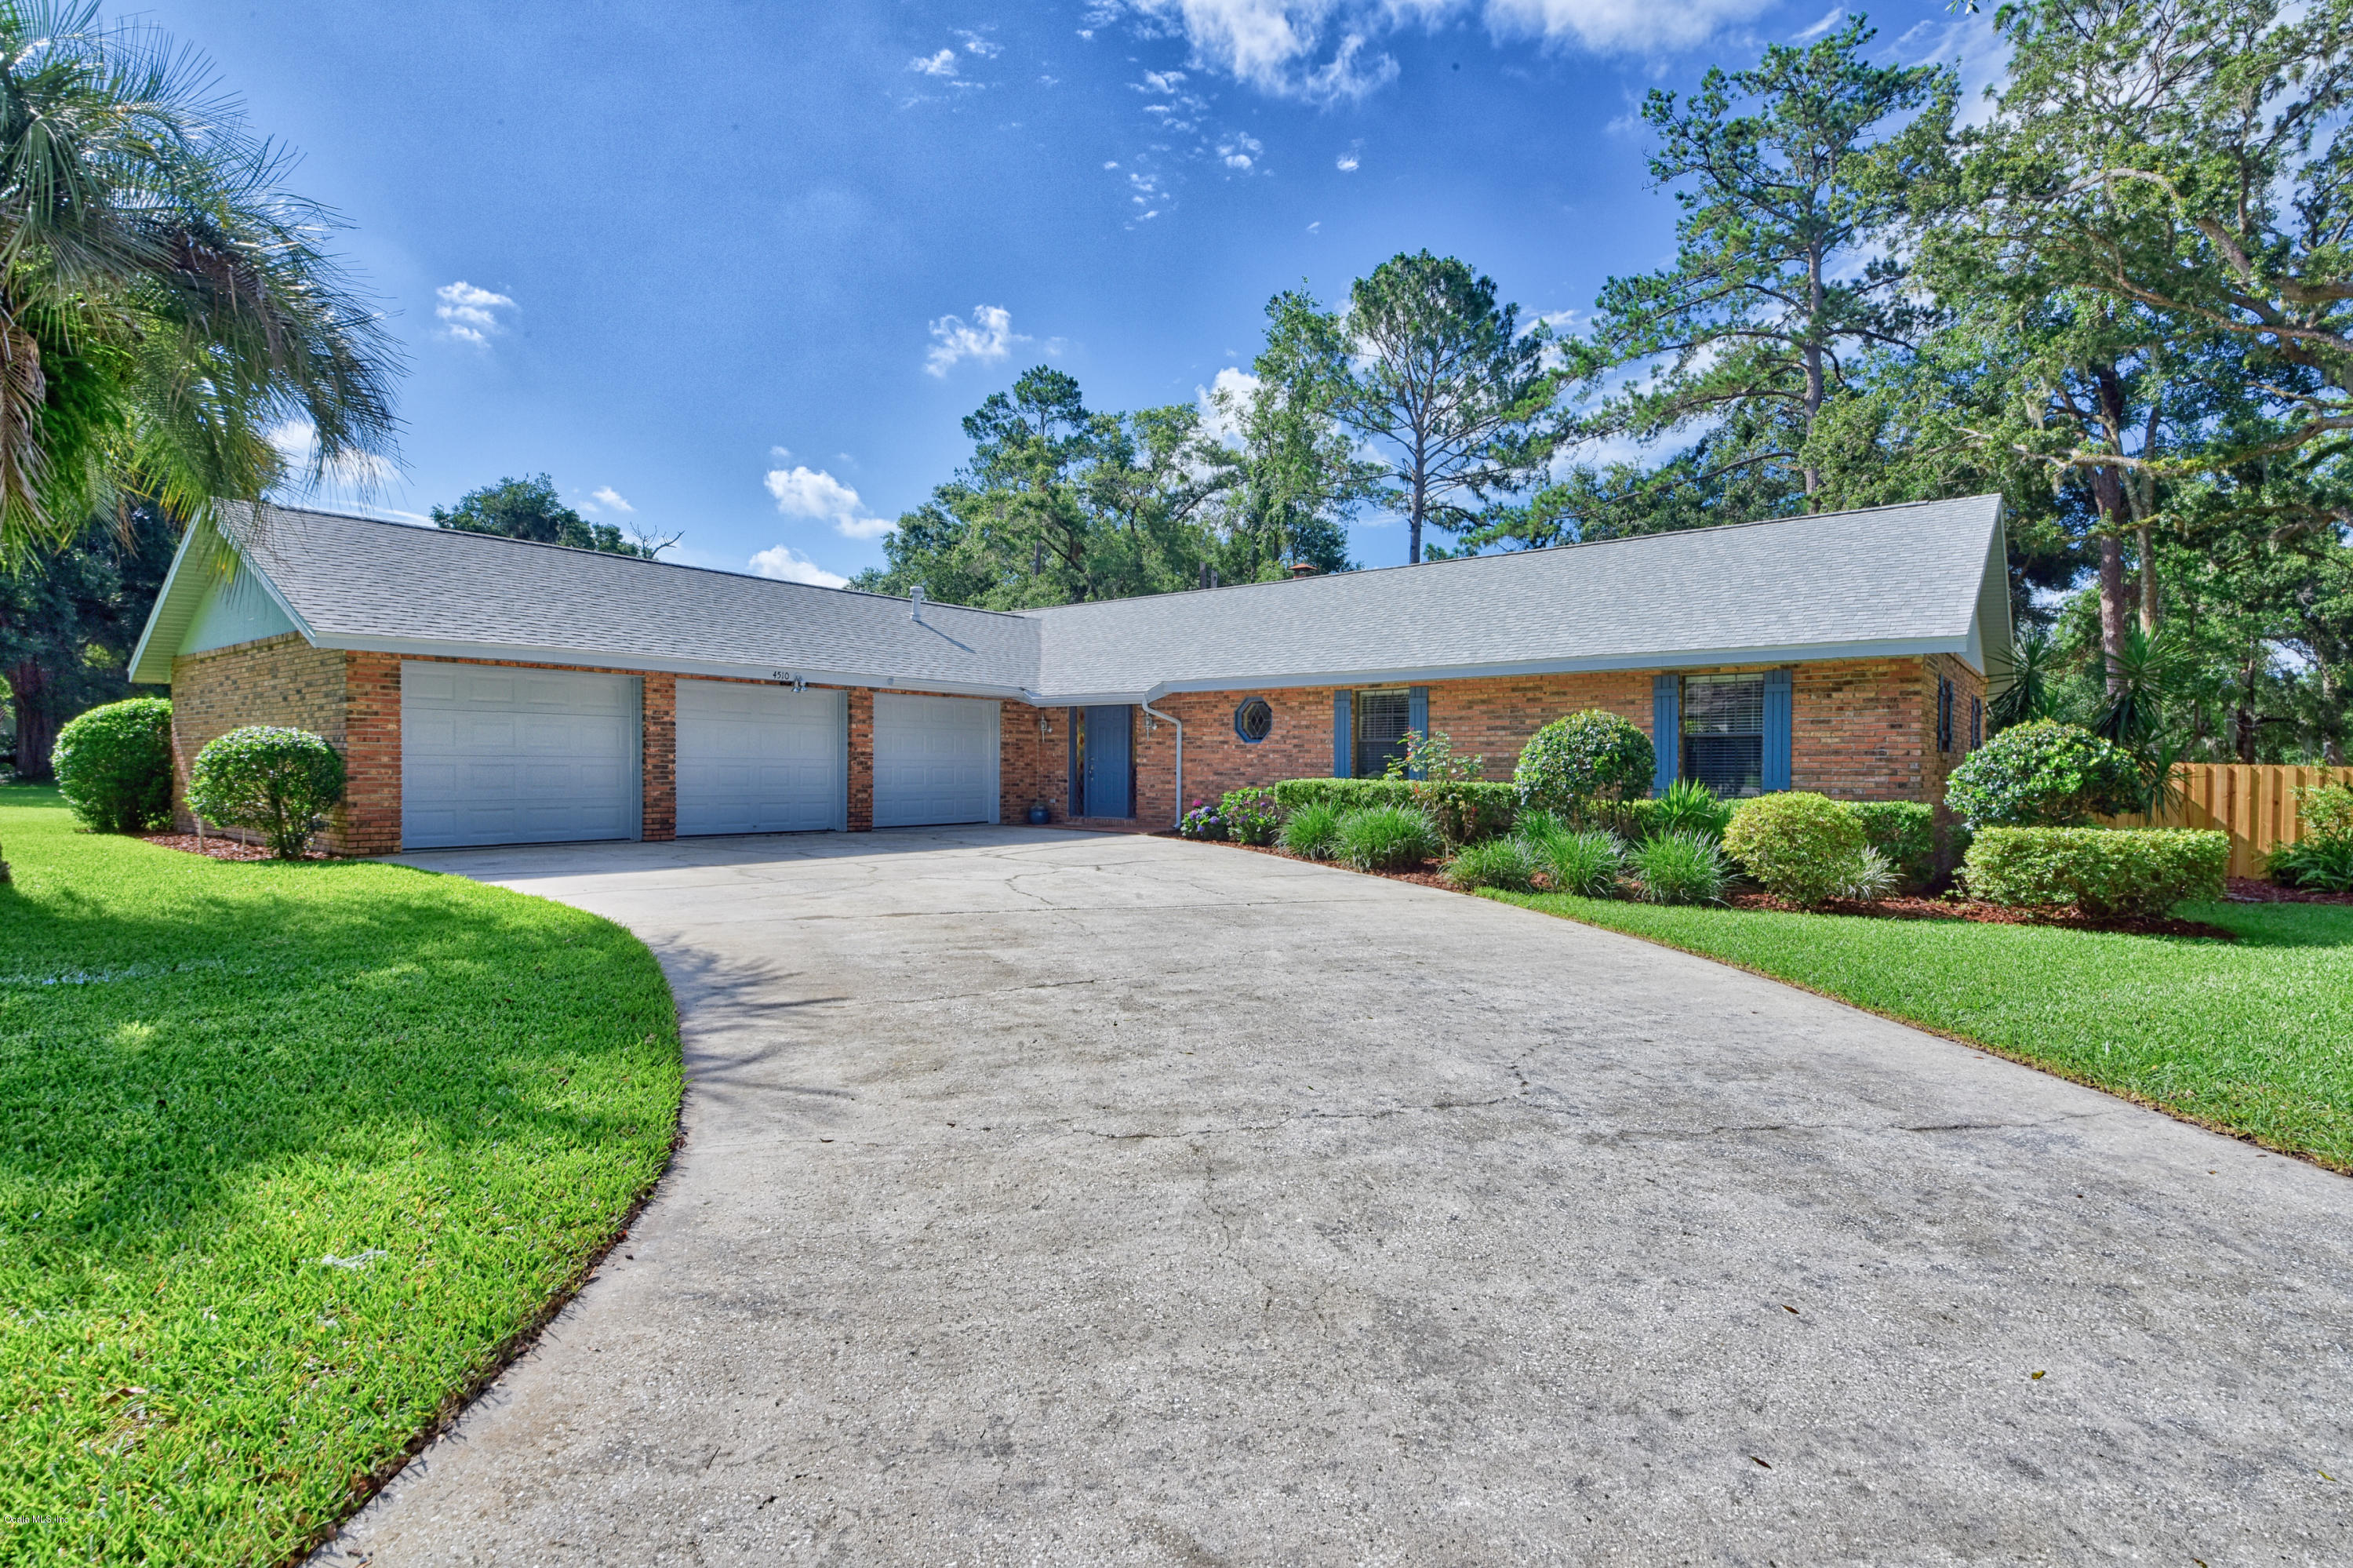 4510 SE 7TH PLACE, OCALA, FL 34471